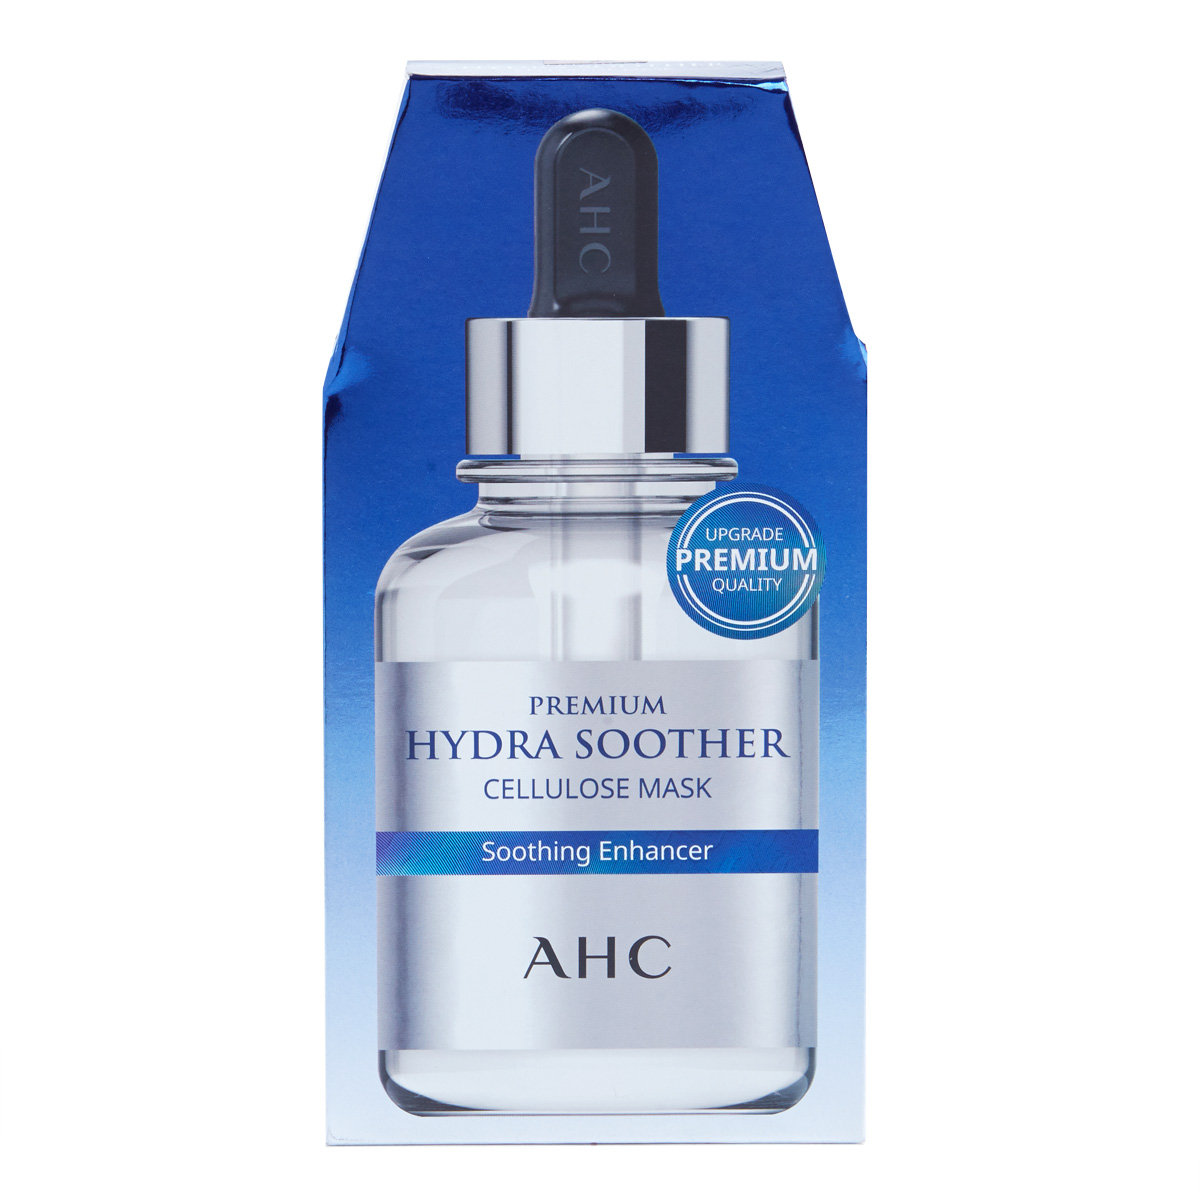 AHC Hydra Soother Mask(Premium)